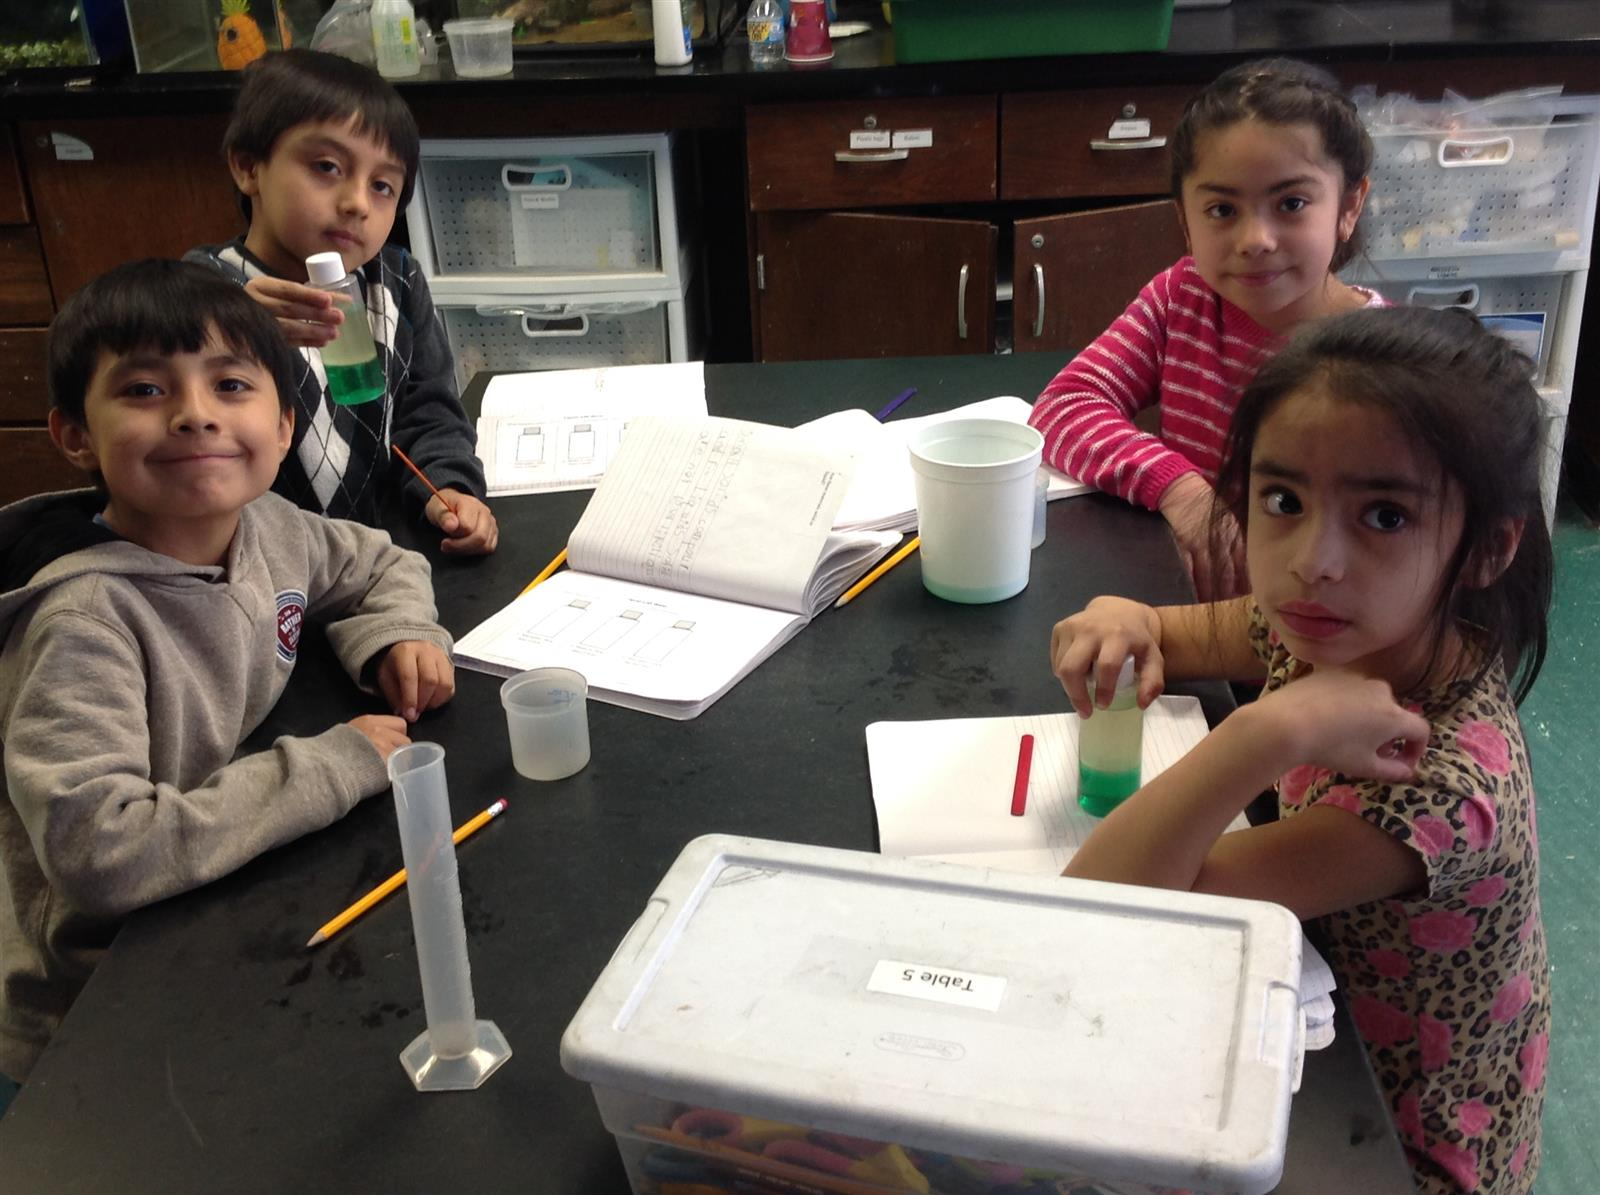 First Graders Learn About Liquids and Solids